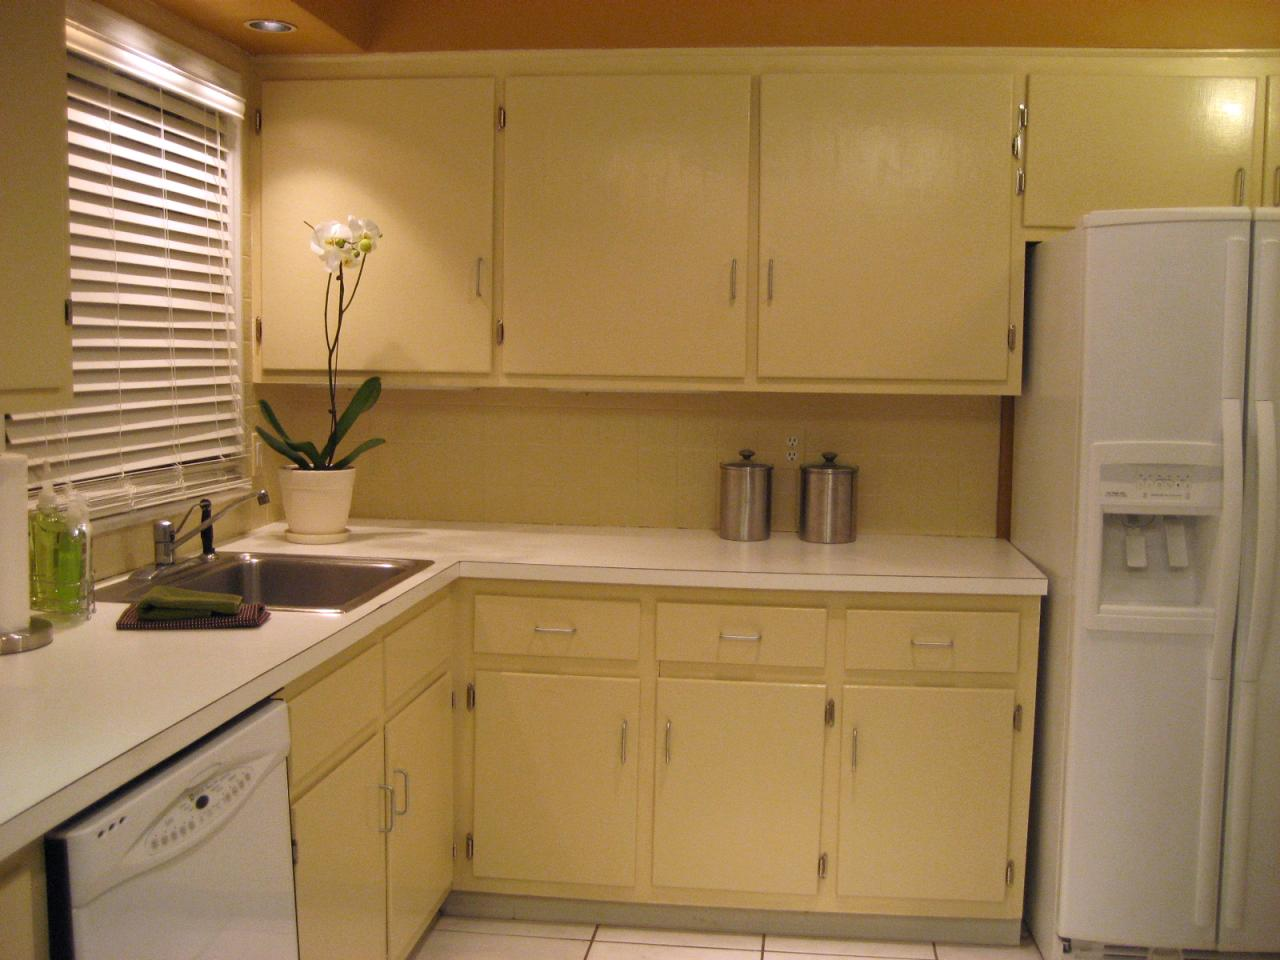 How to paint kitchen cabinets hgtv for Painting kitchen cabinets